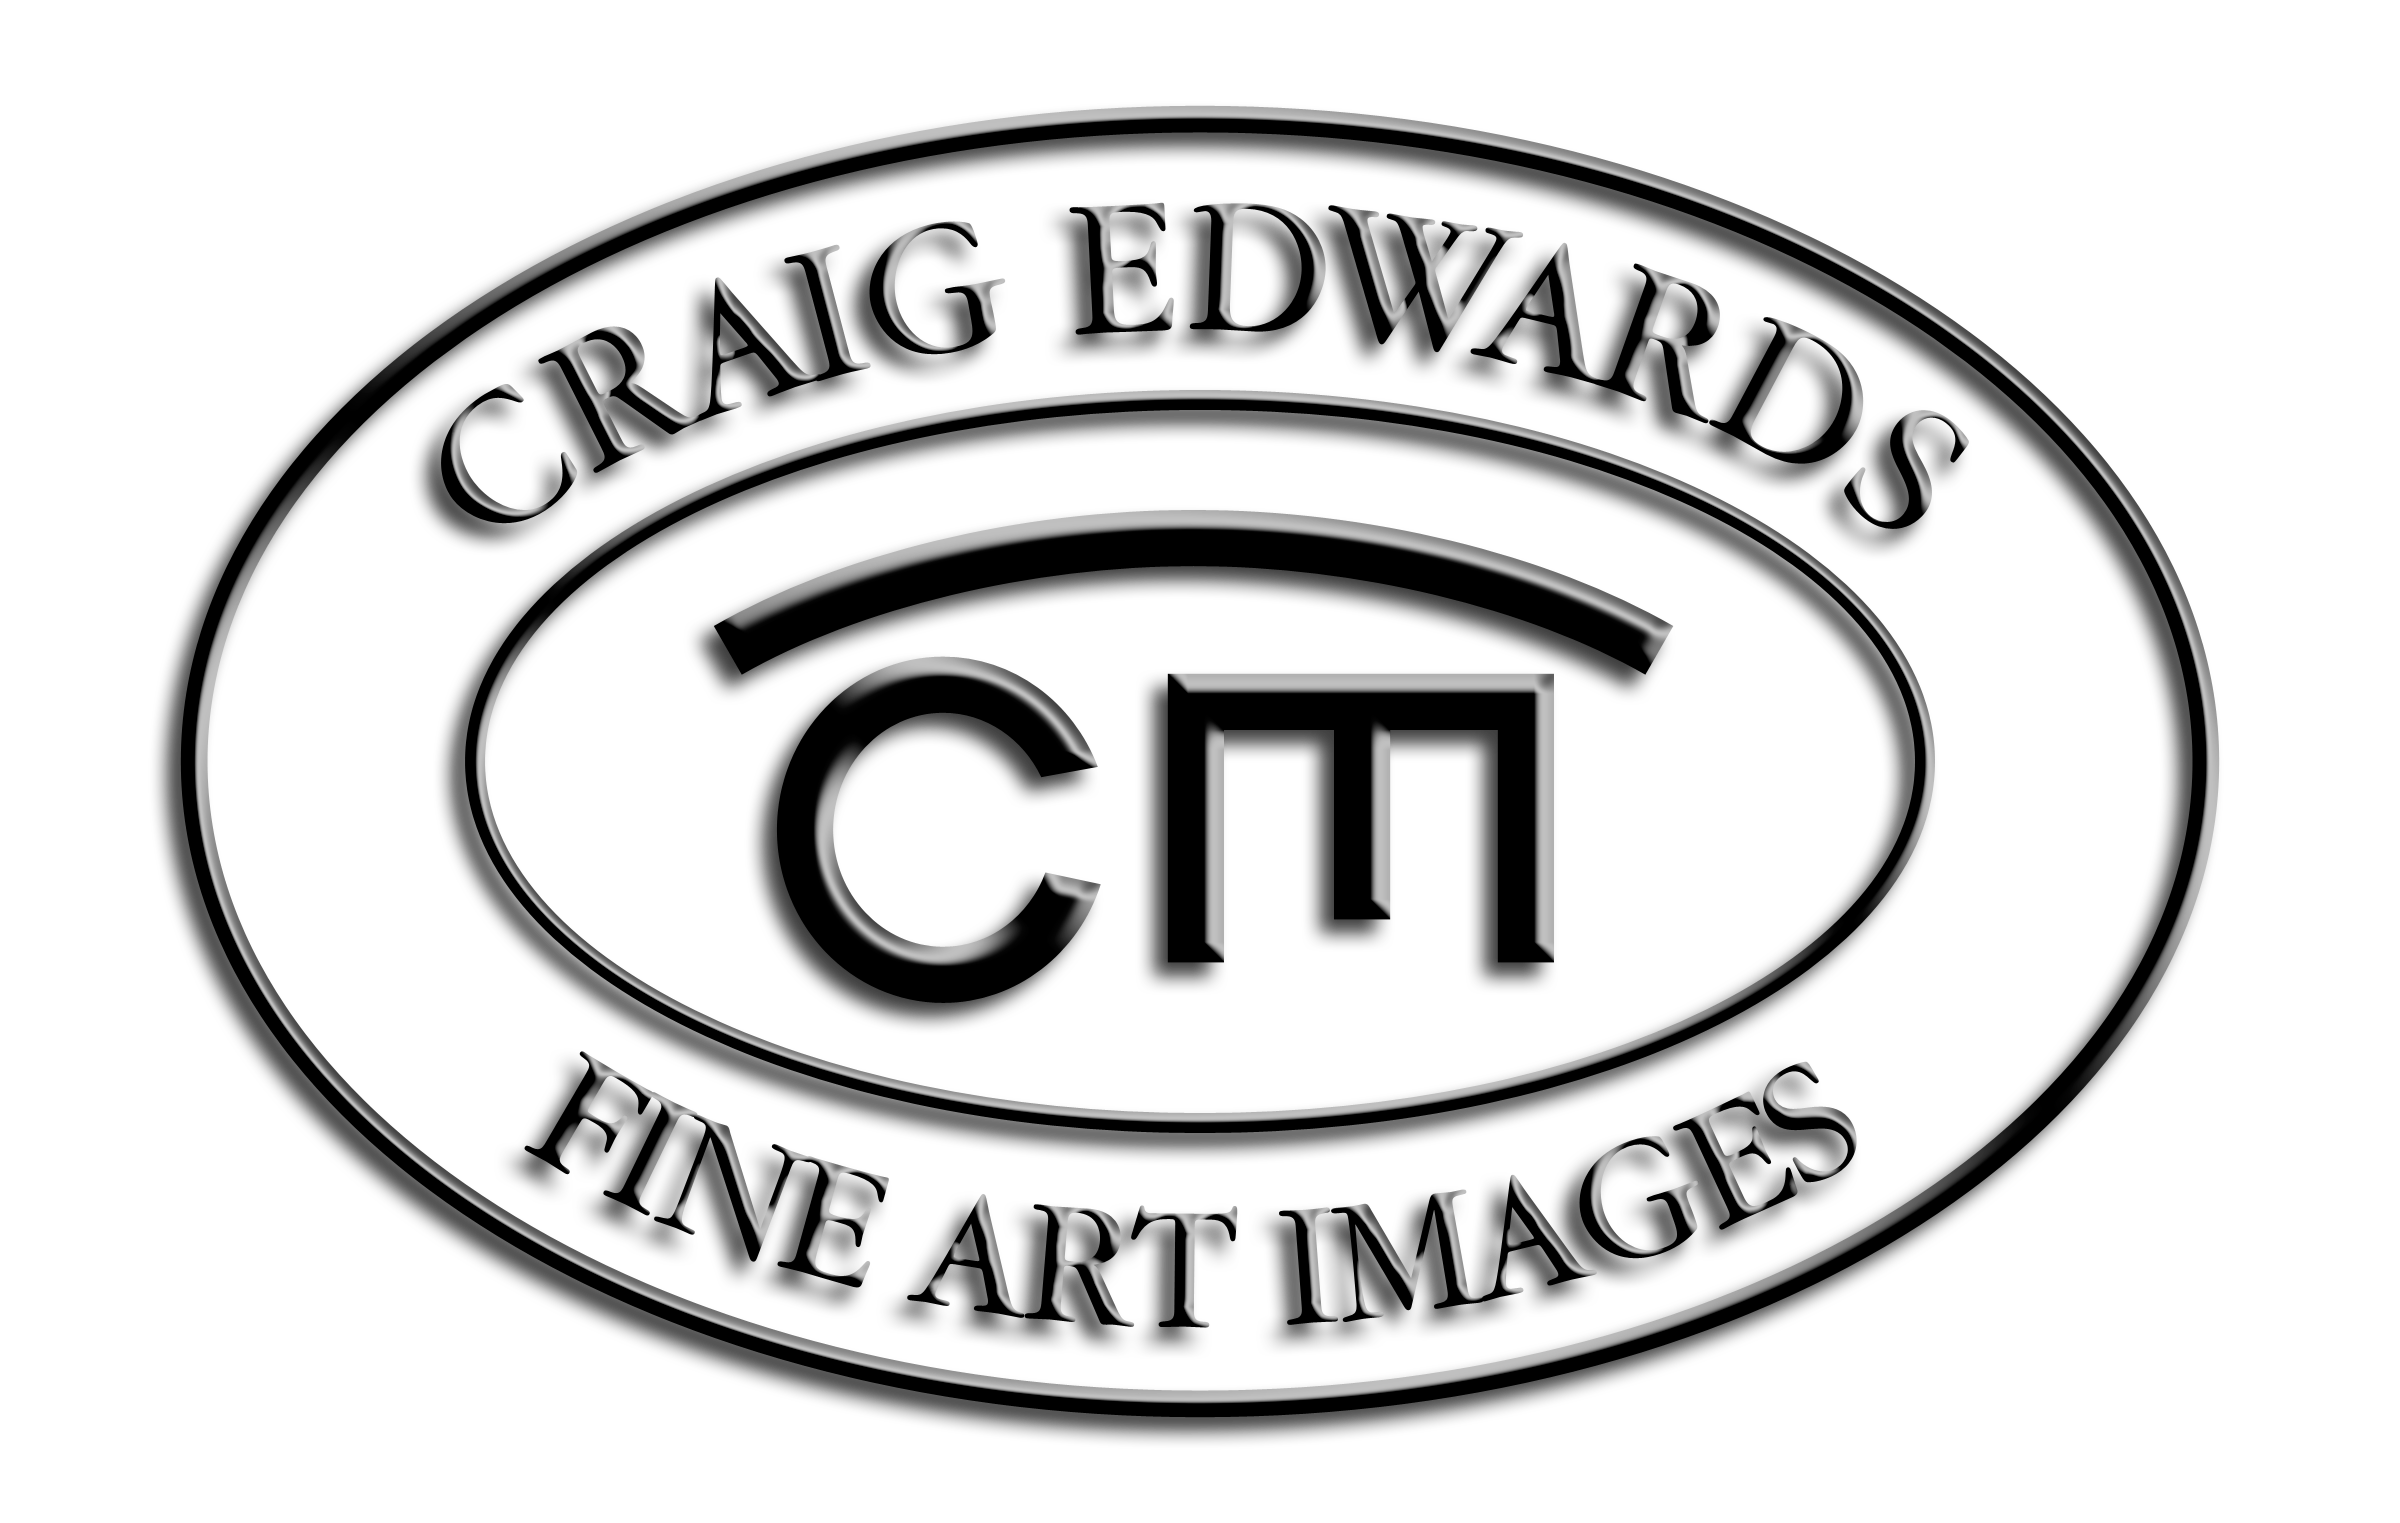 Craig Edwards Fine Art